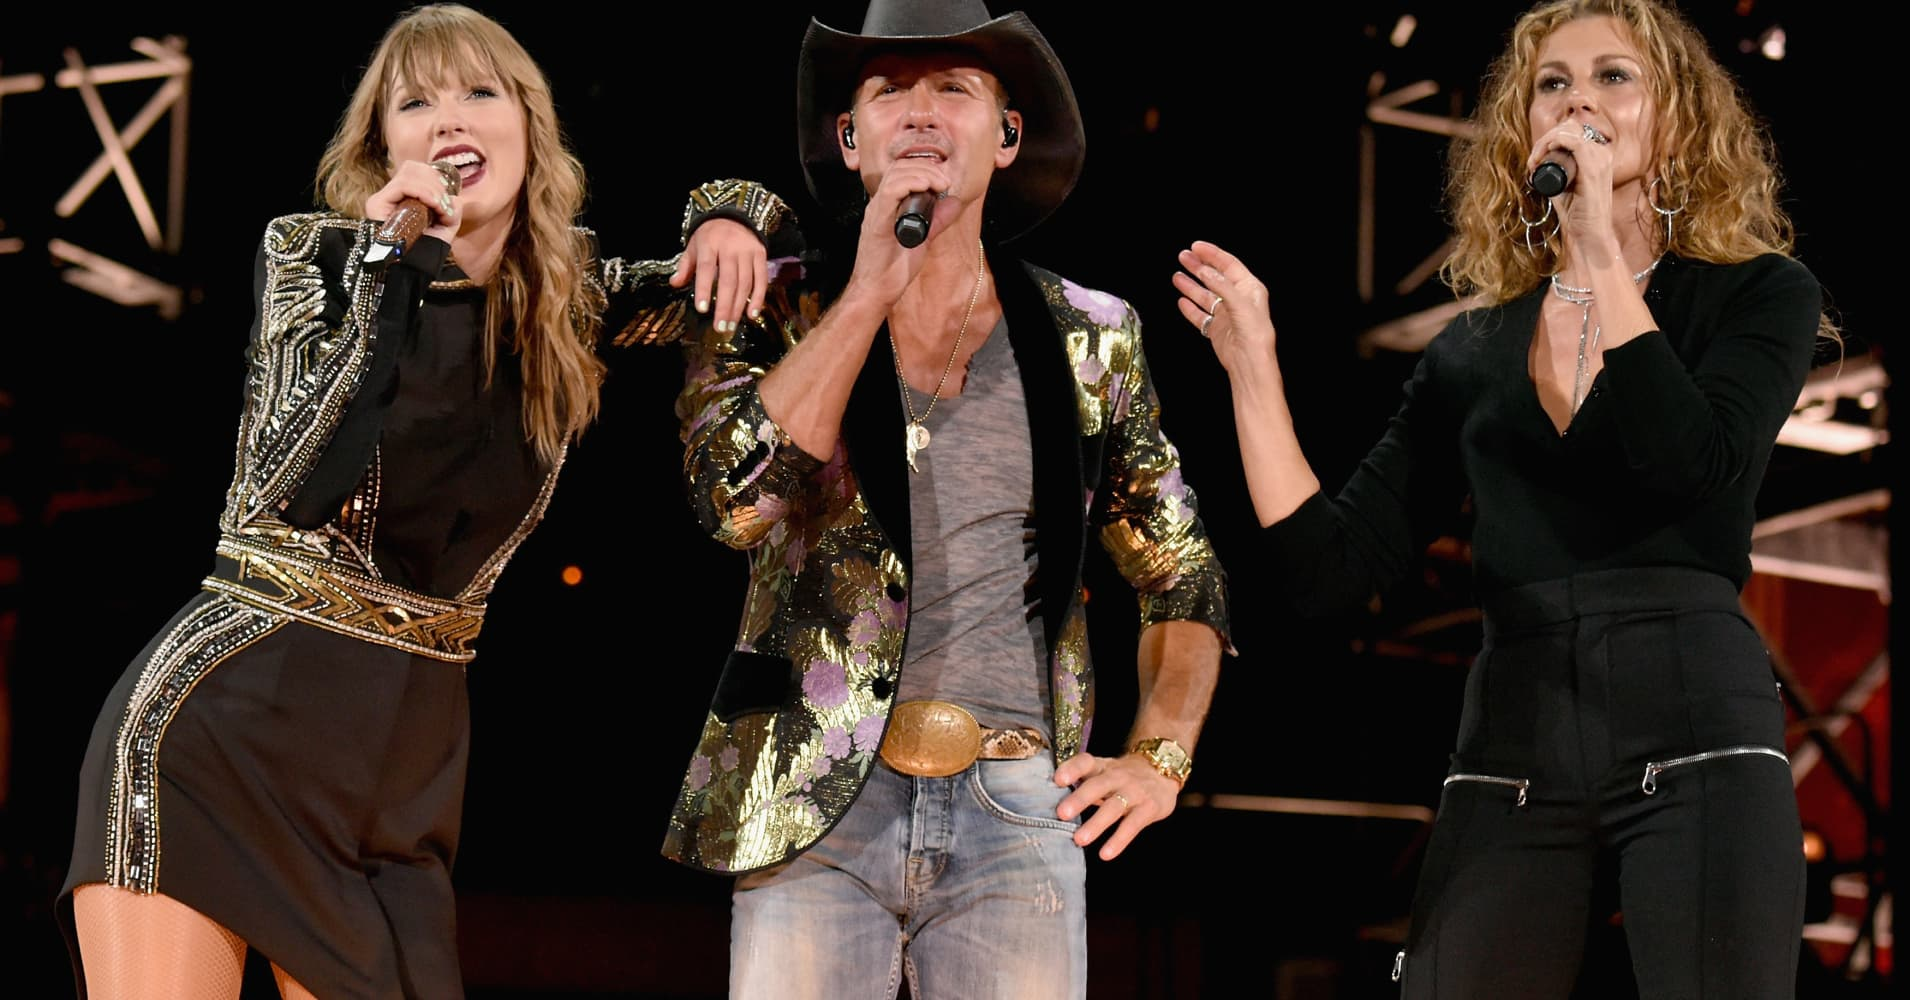 Taylor Swift, Tim McGraw and Faith Hill perform onstage during the Reputation Stadium Tour in Nashville, Tennessee.  (